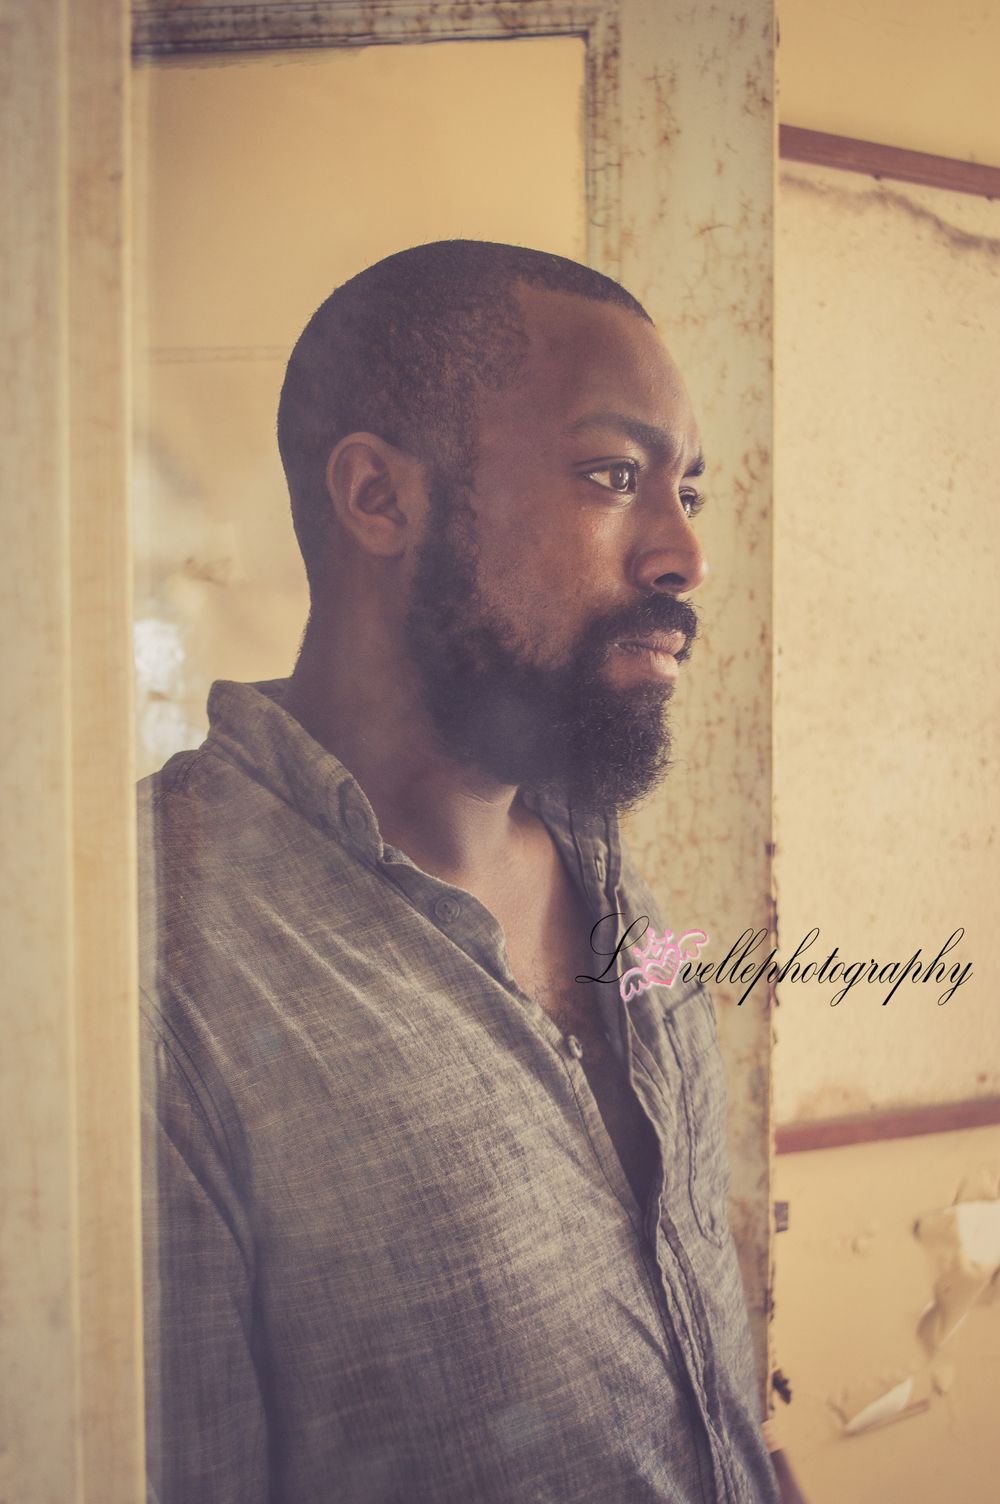 black man- model- deep thought